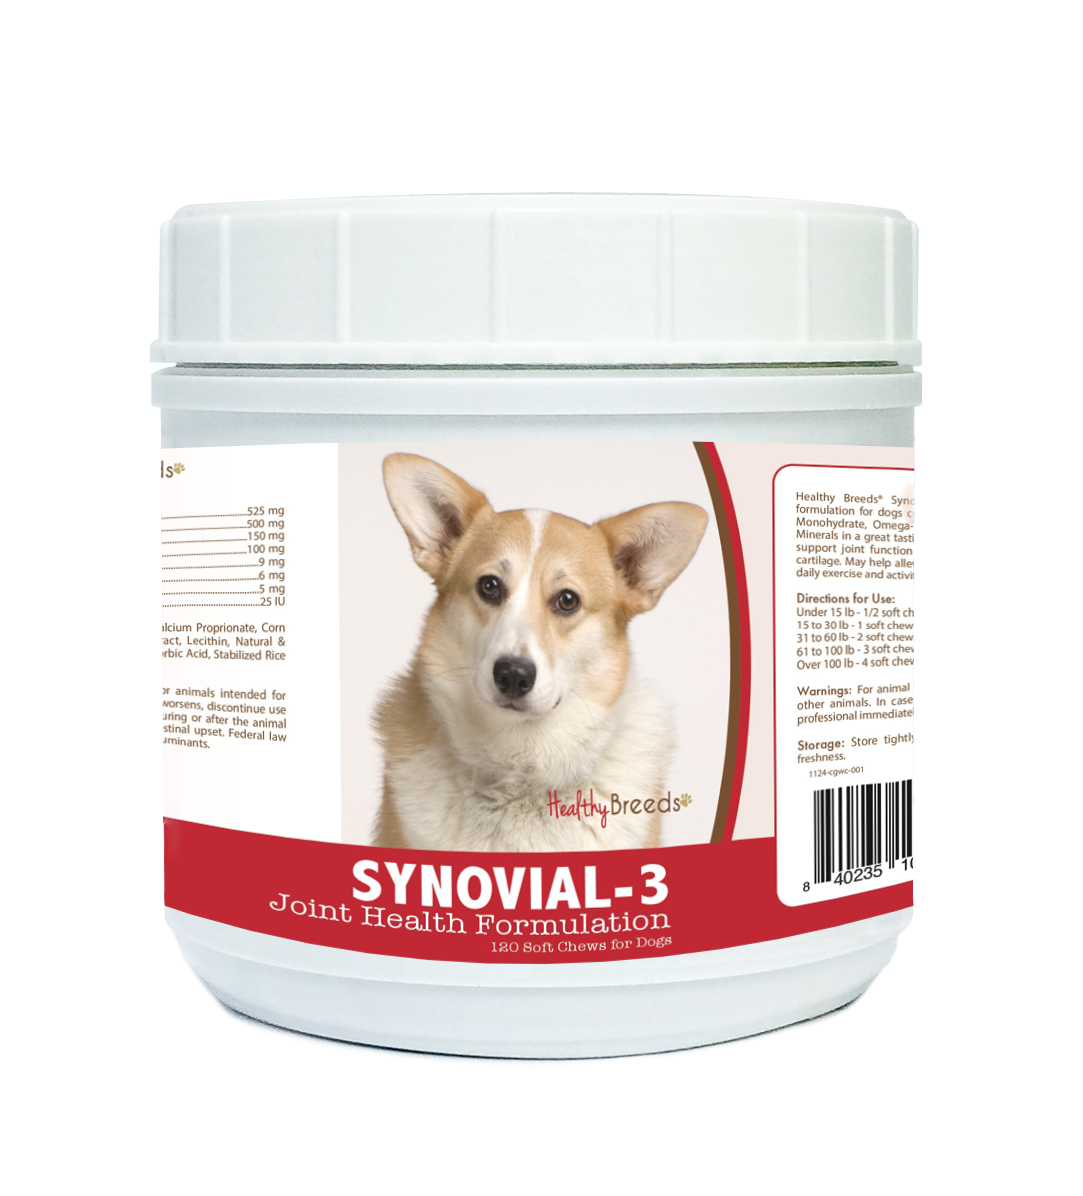 Healthy Breeds 840235104605 Cardigan Welsh Corgi Synovial-3 Joint Health Formulation 120 Count